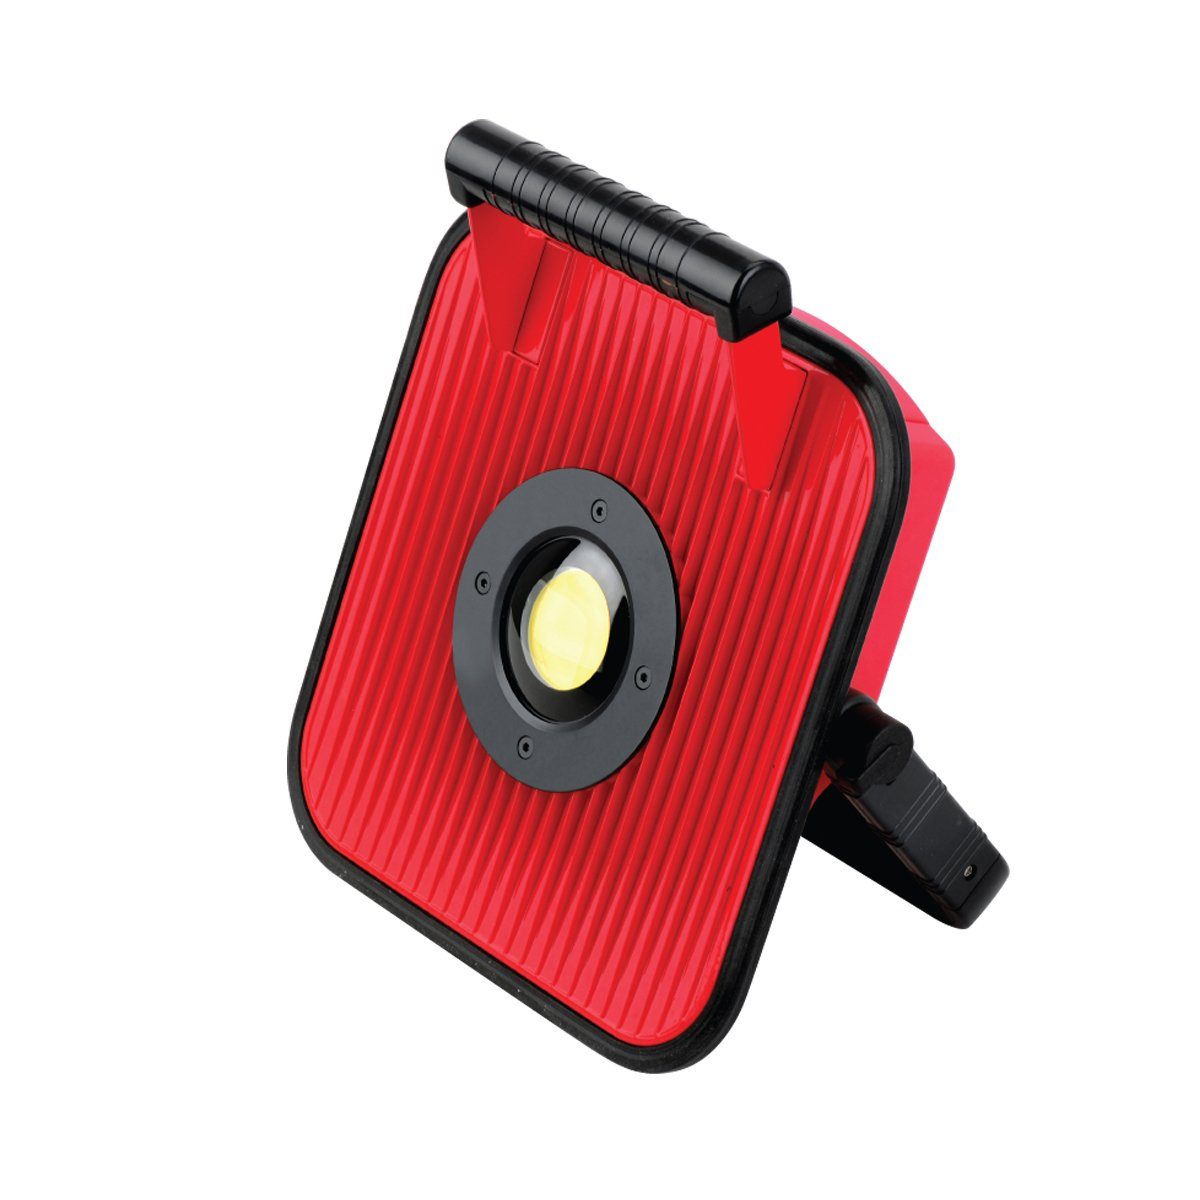 Globe Electric 66208 LED Portable Rechargeable Battery Worklight with Bluetooth Speaker & USB Port, Red/Black